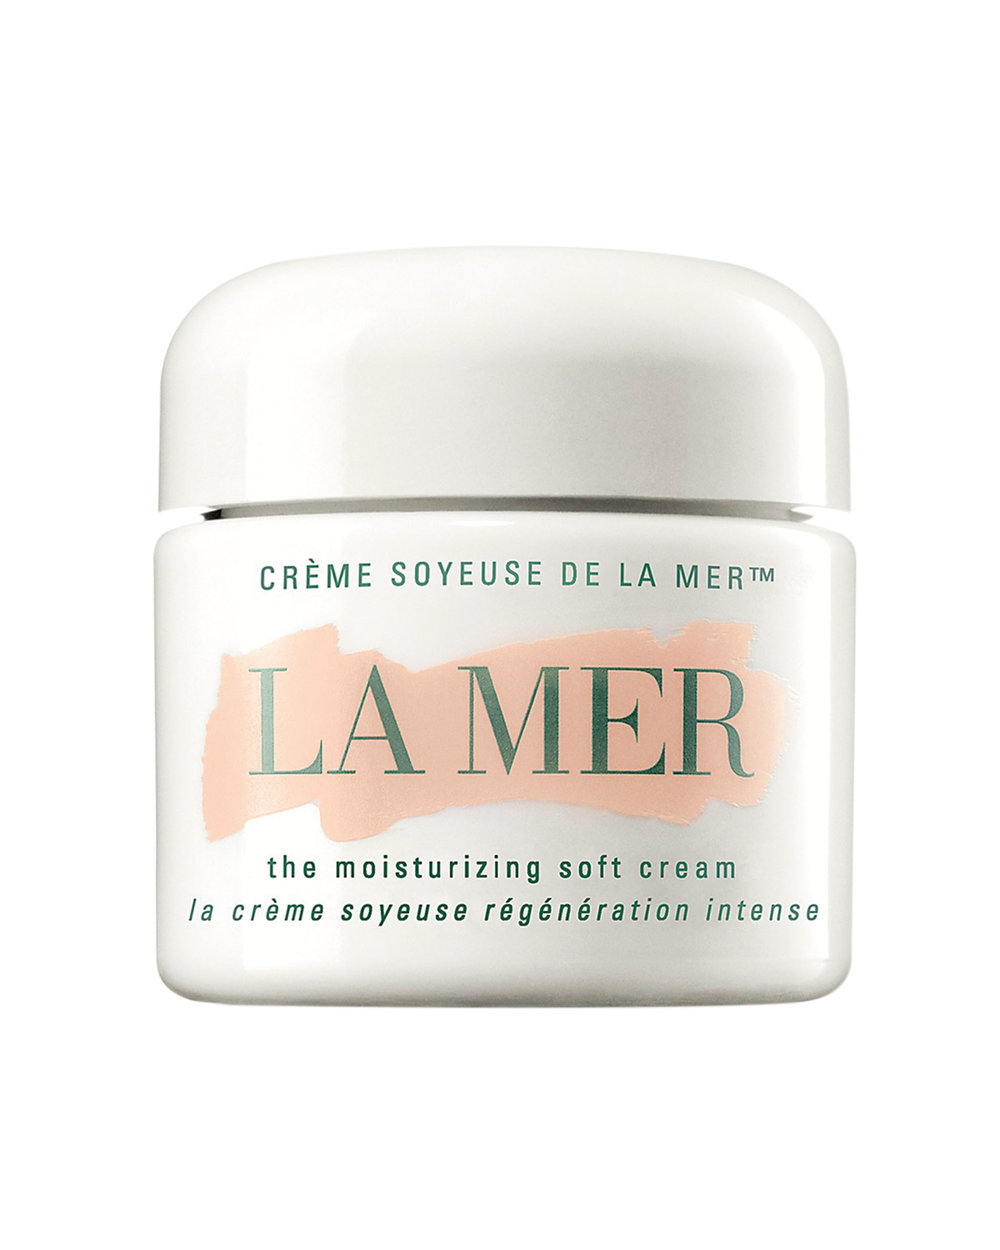 Under the Sea  The Moisturizing Soft Cream by La Mer $390  The legendary La Mer has earned its well-deserved reputation as a miracle cream, thanks to the gift of the undersea world: rare, amazingly nutrient-rich sea kelp at the heart of its Miracle Broth base. This revolutionary moisturizer delivers La Mer's signature strength and renewal in a new, lighter texture. Pat a small amount between fingertips and press gently into skin.